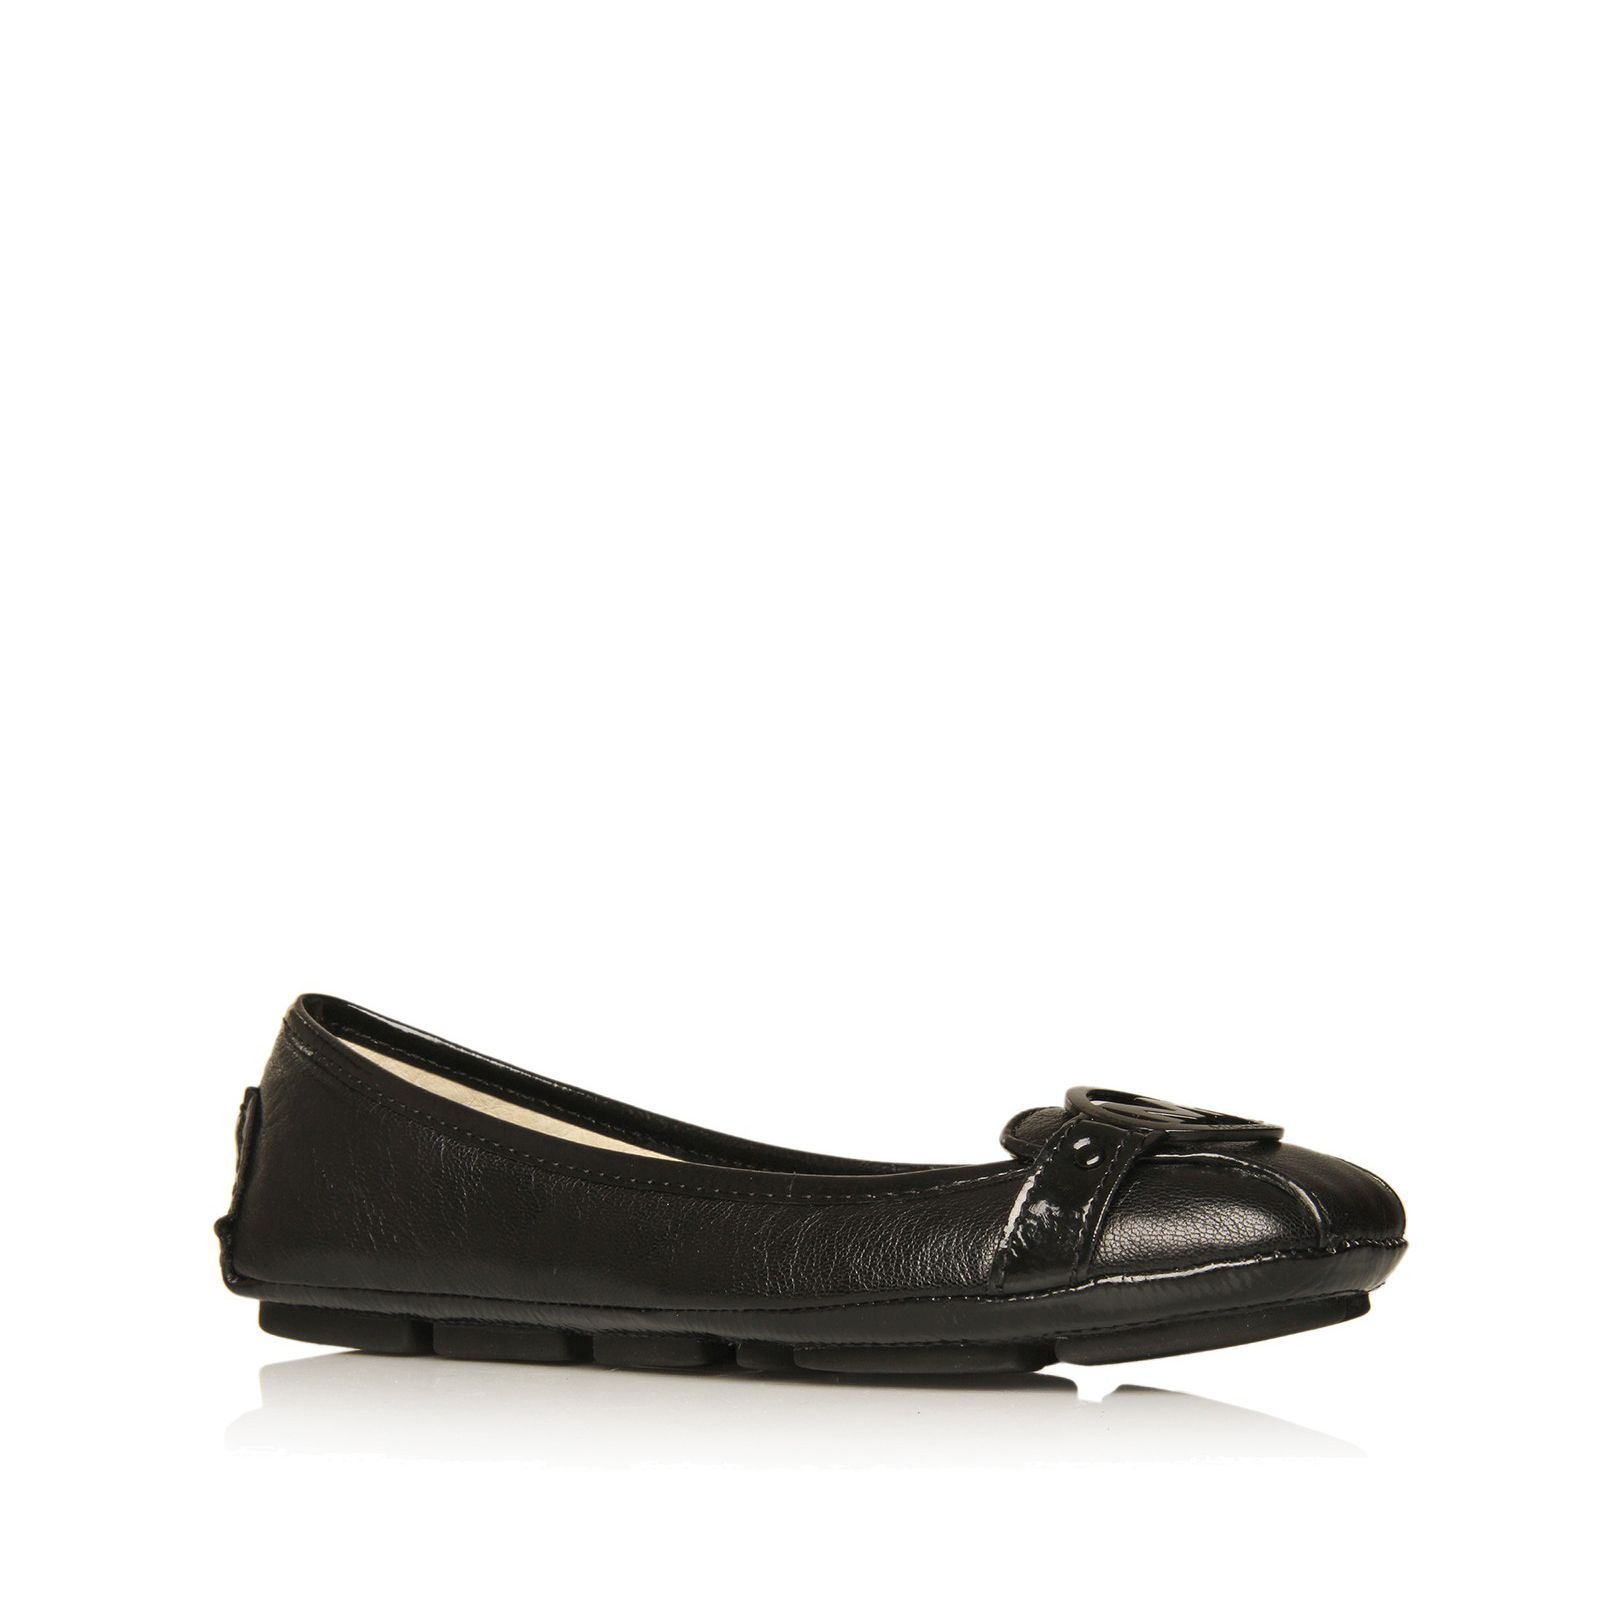 Michael Michael Kors Fulton Moc Ballerina Shoes In Black